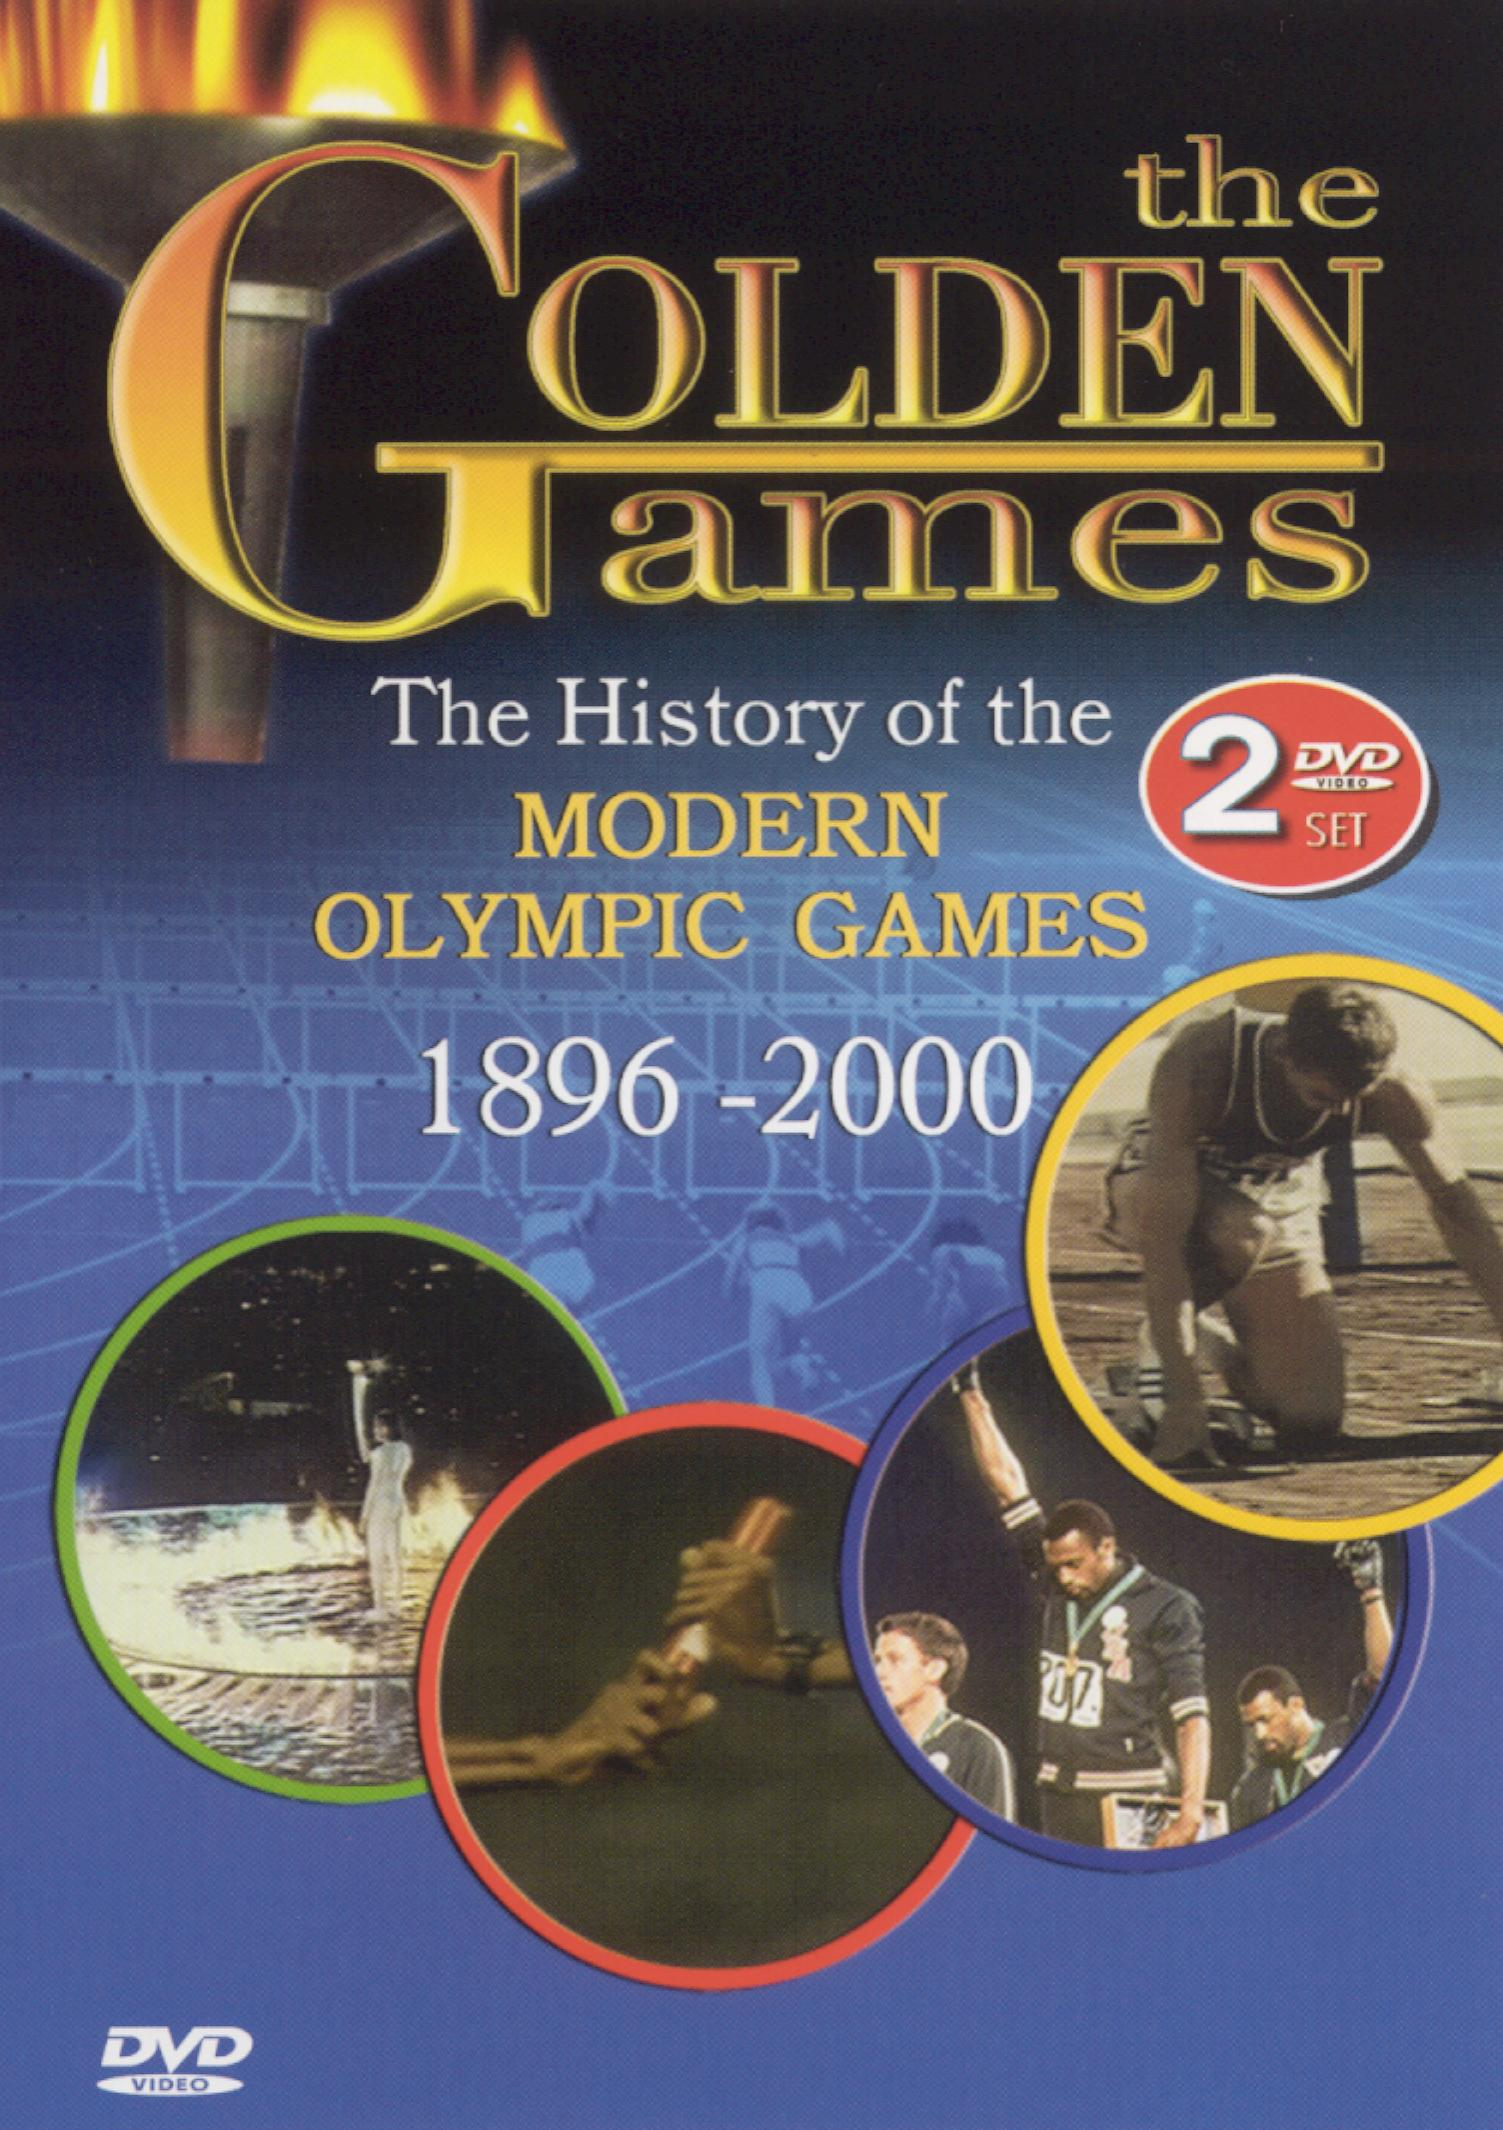 a history of the modern olympic games